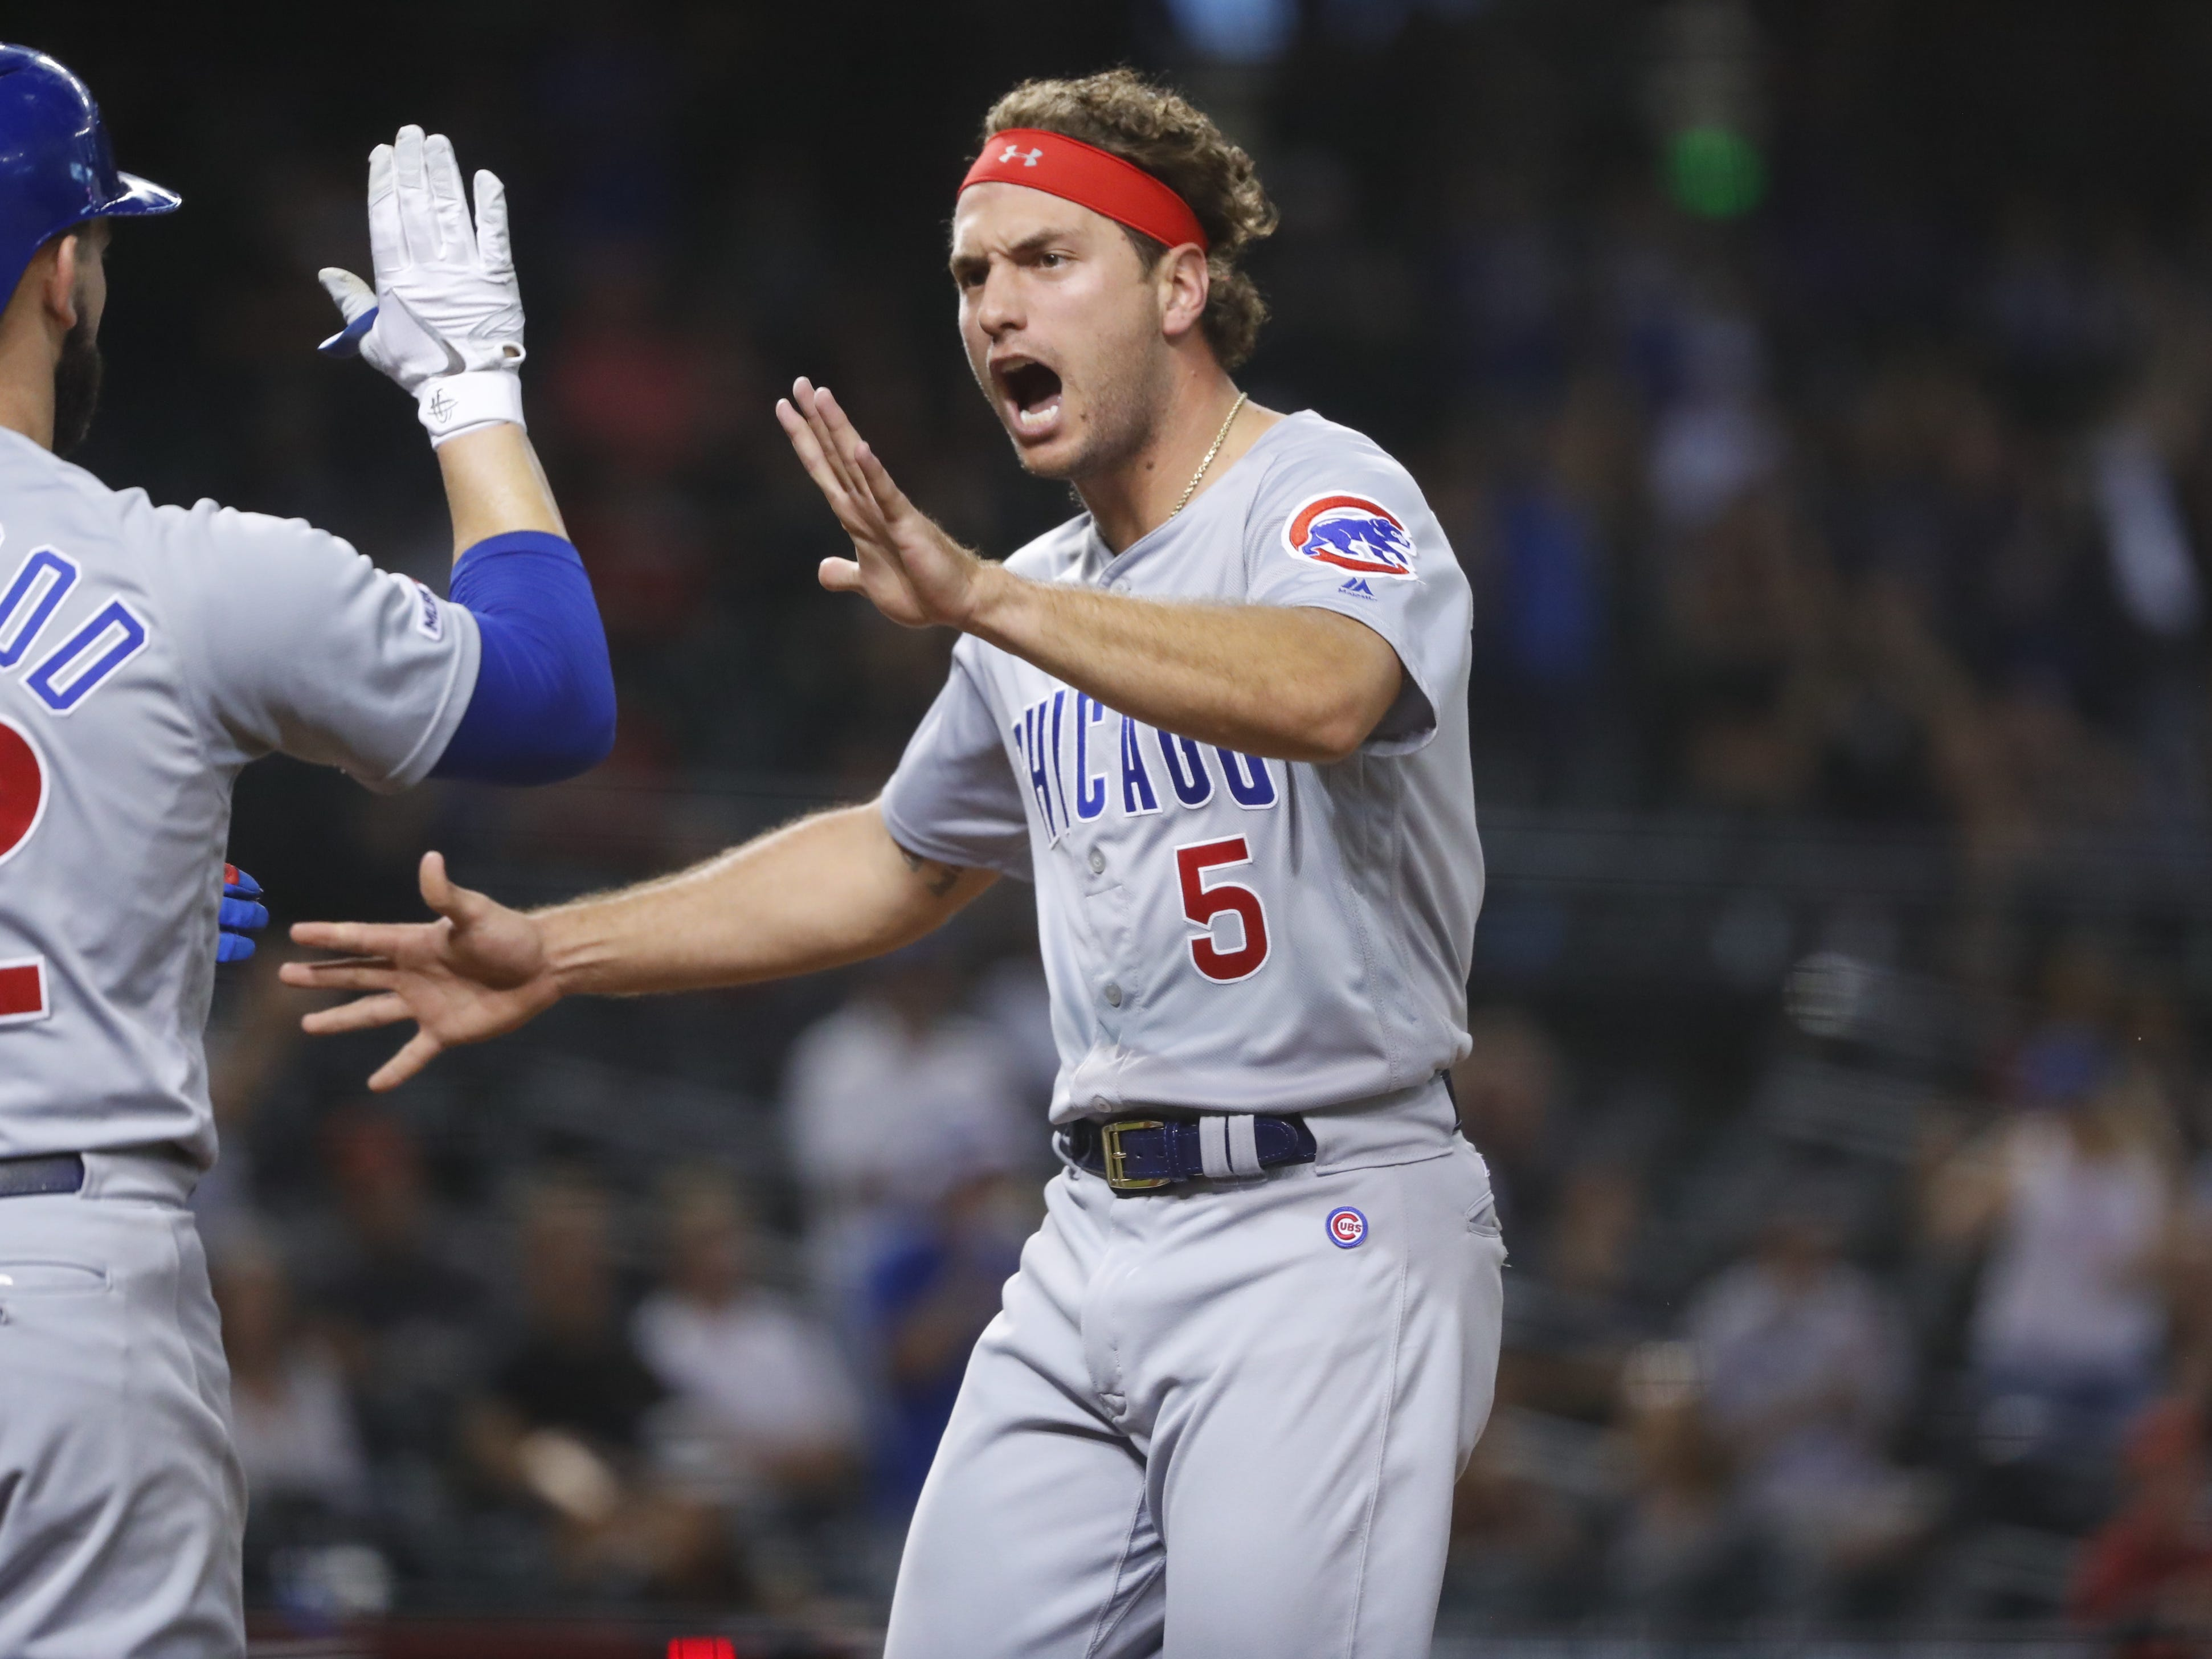 Cubs' Albert Almora Jr. (5) celebrates after scoring against the Diamondbacks during the 15th inning at Chase Field in Phoenix, Ariz. on April 28, 2019.